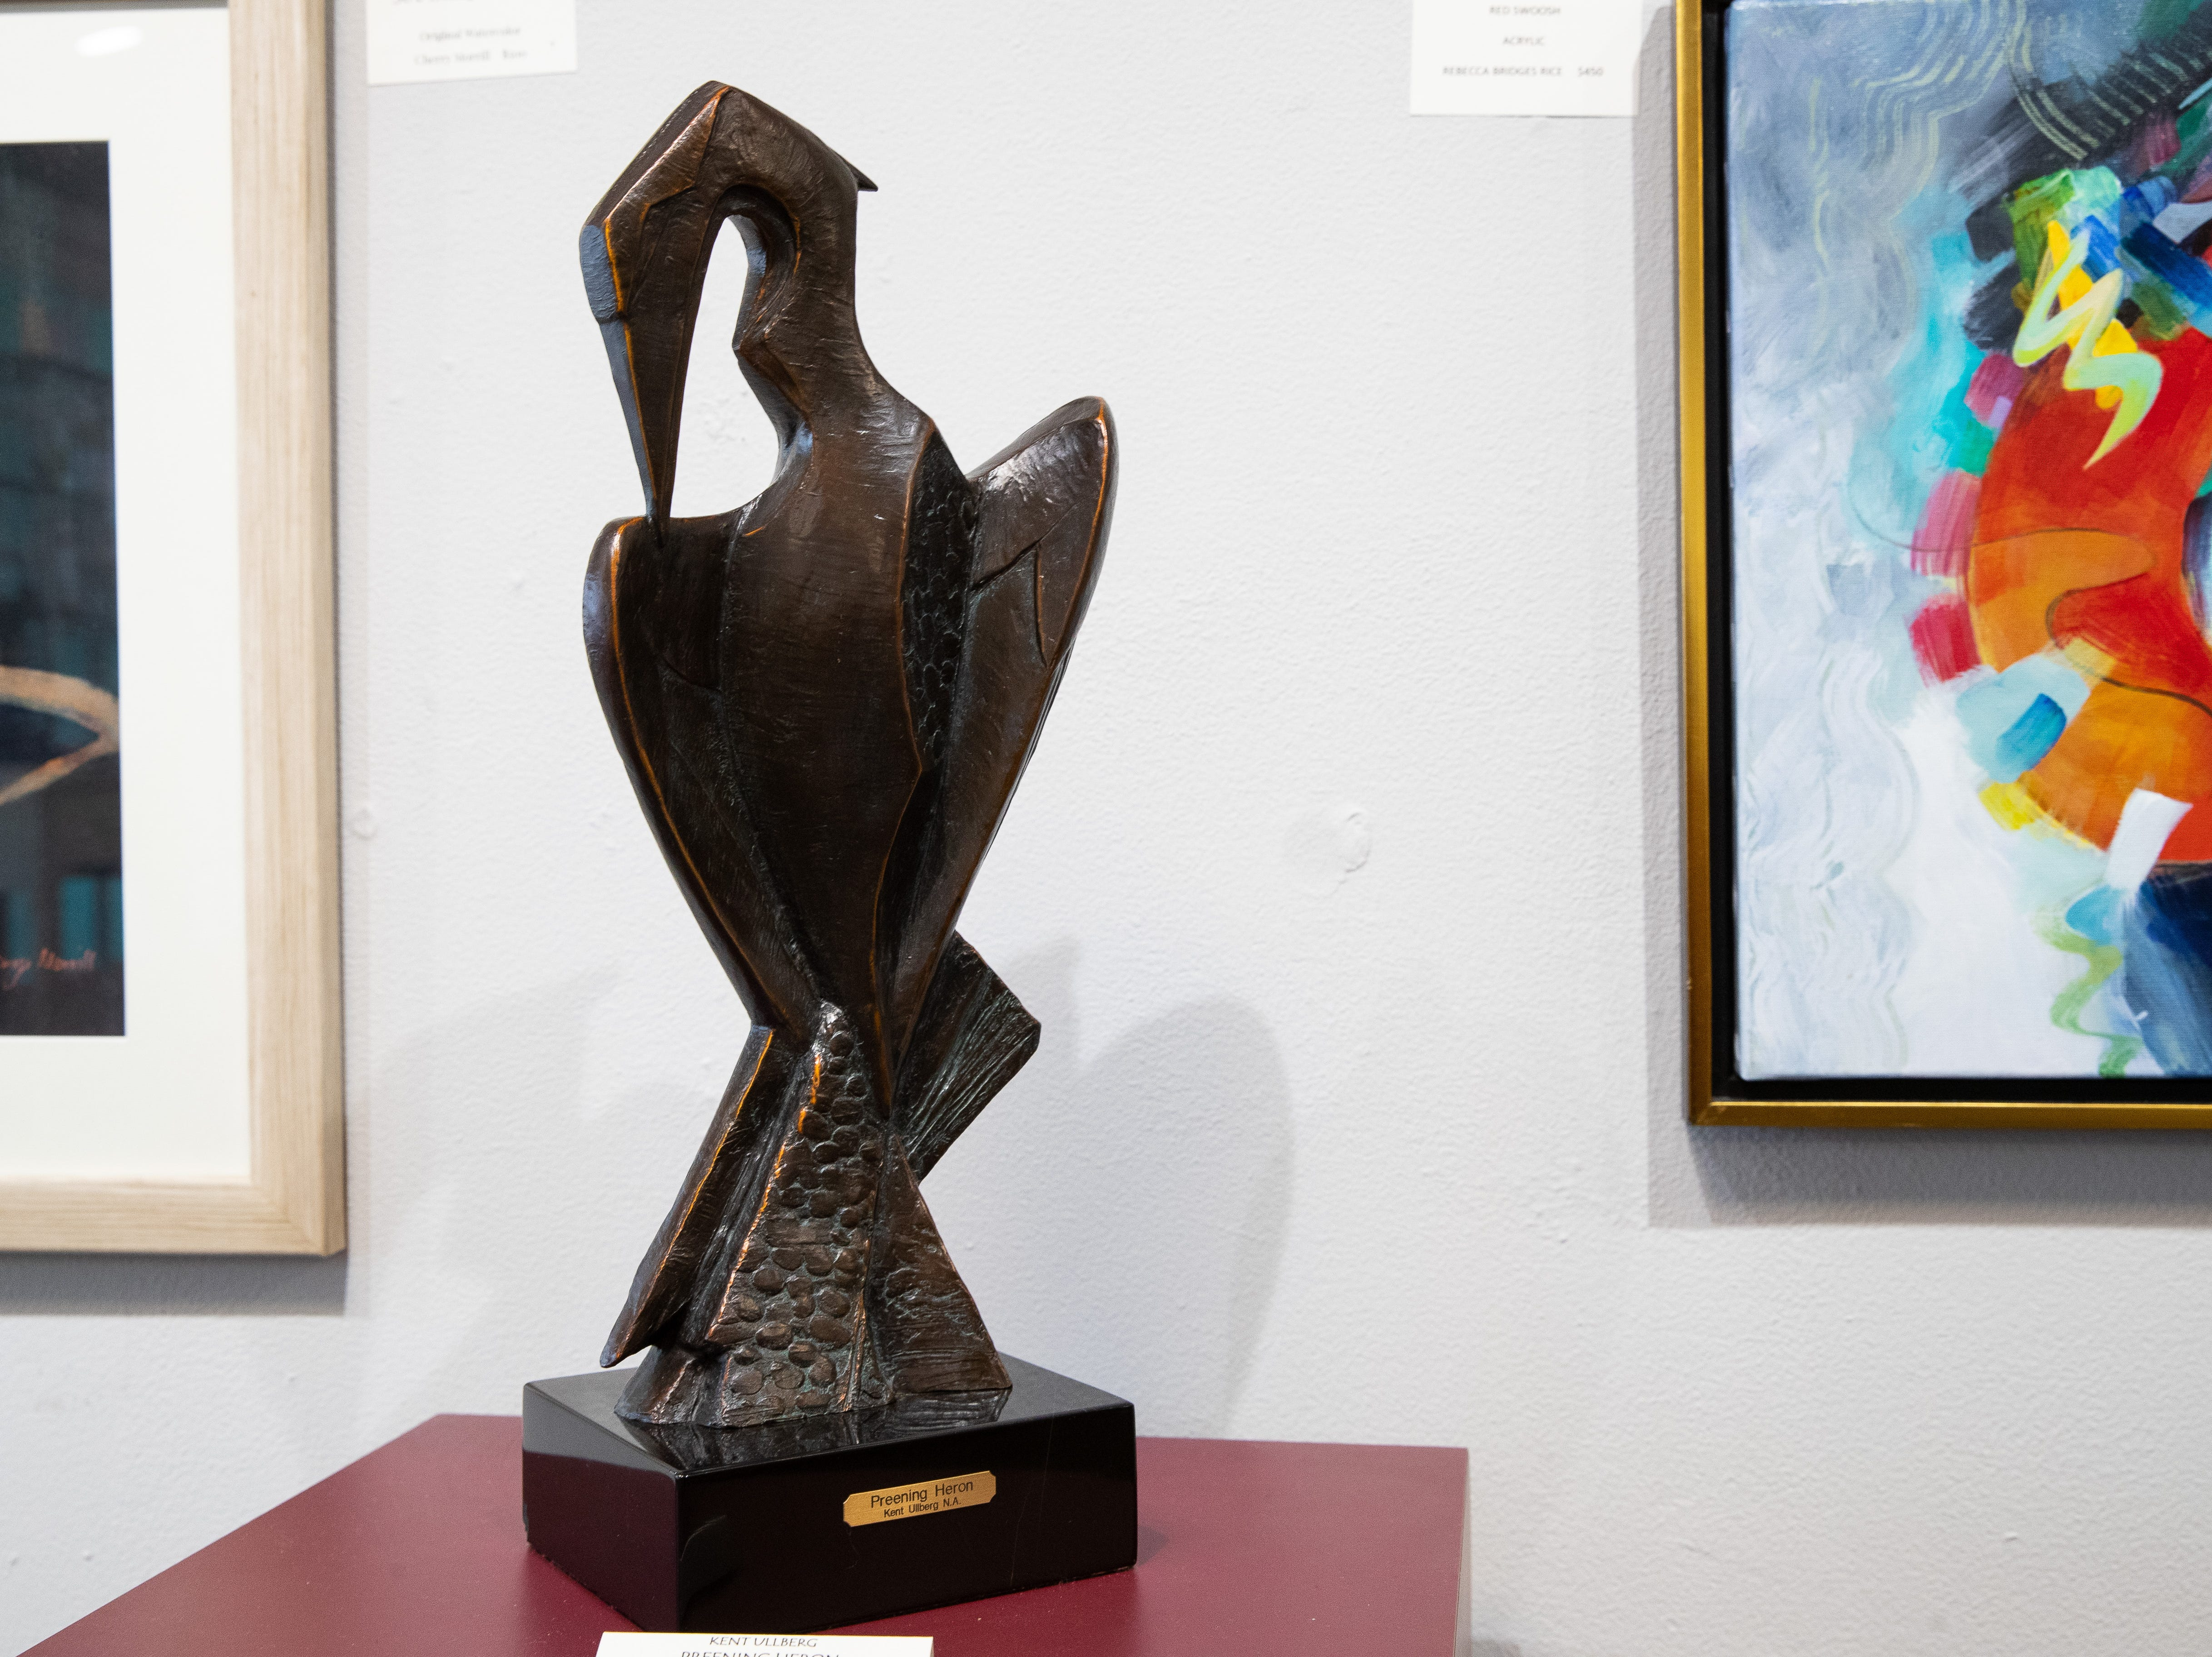 Kent Ullberg sculpture at the Wind Way Gallery at 203 South Austin Street in Rockport.